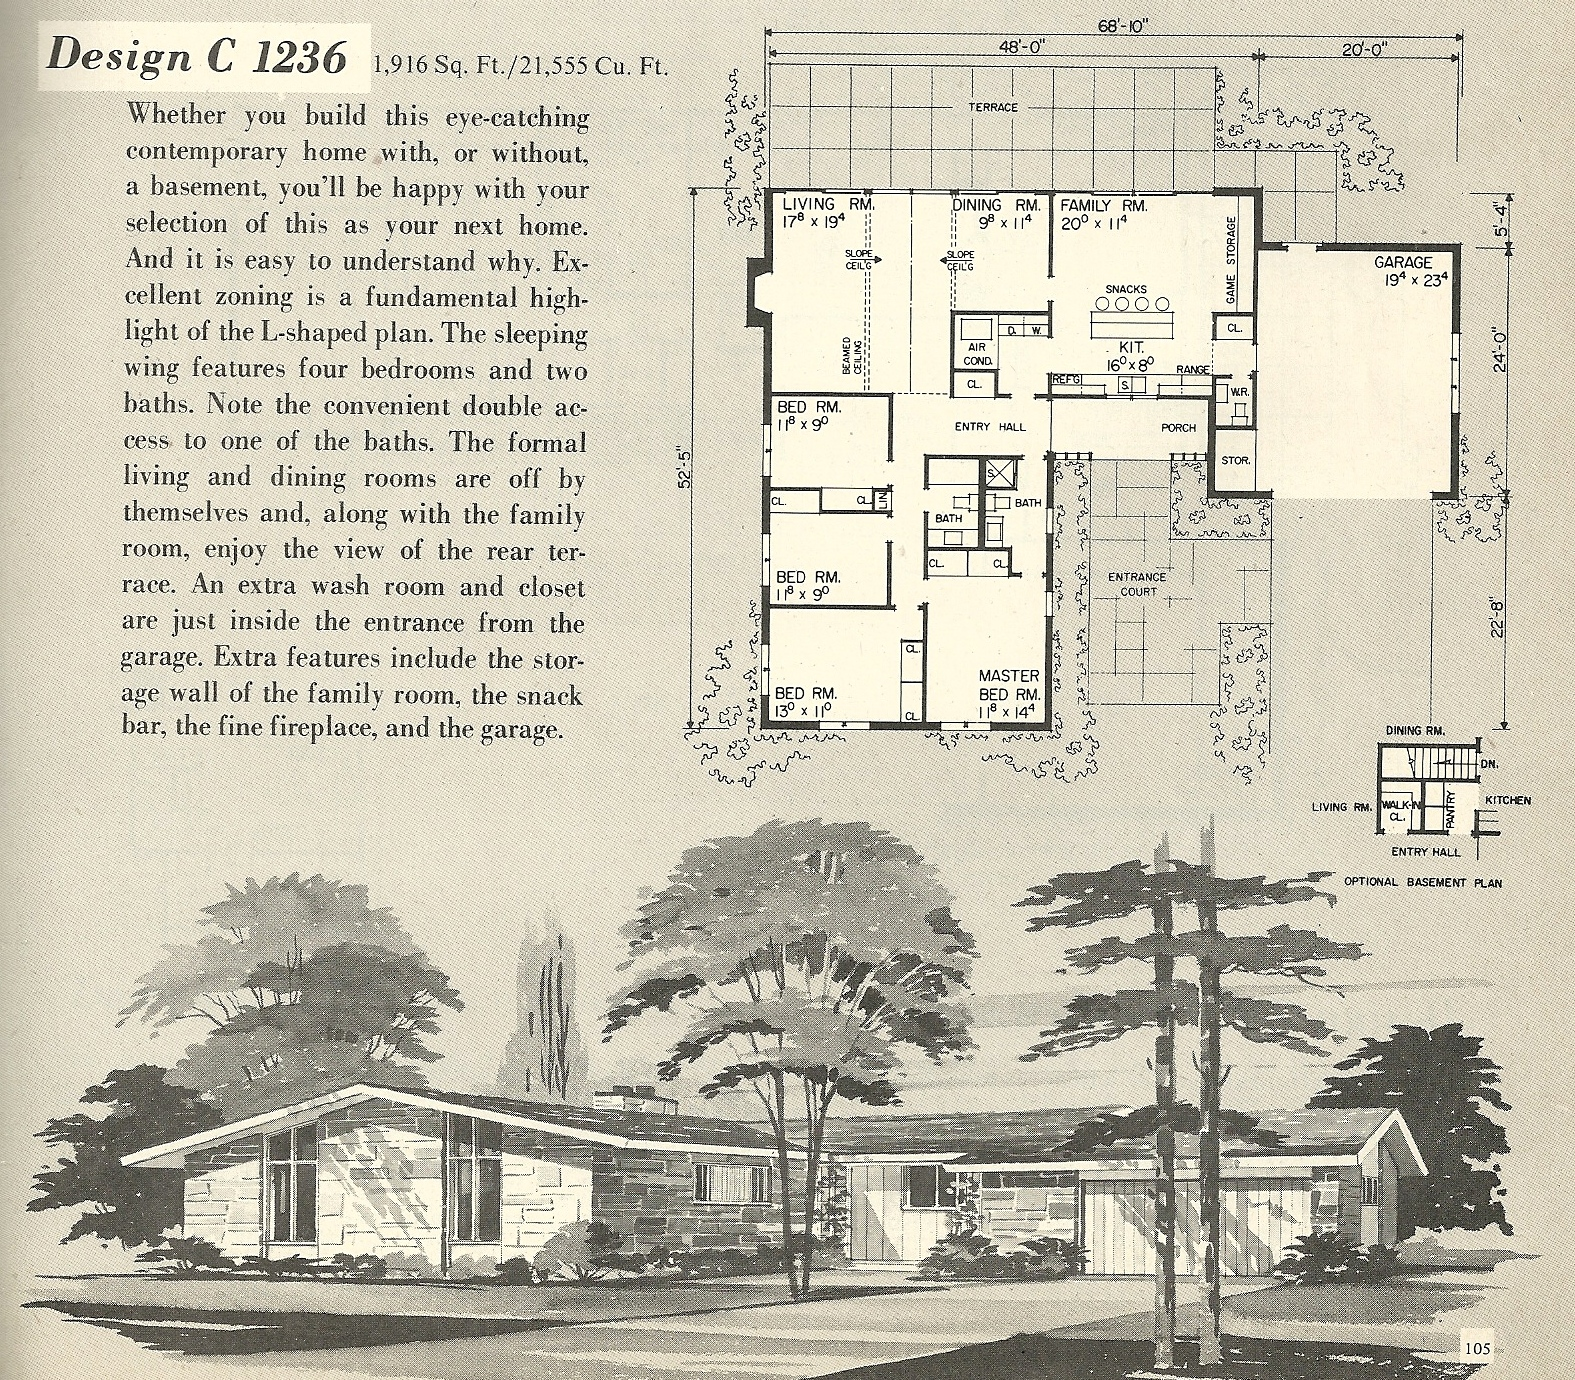 Vintage house plans 1236 antique alter ego for Mid century modern home floor plans